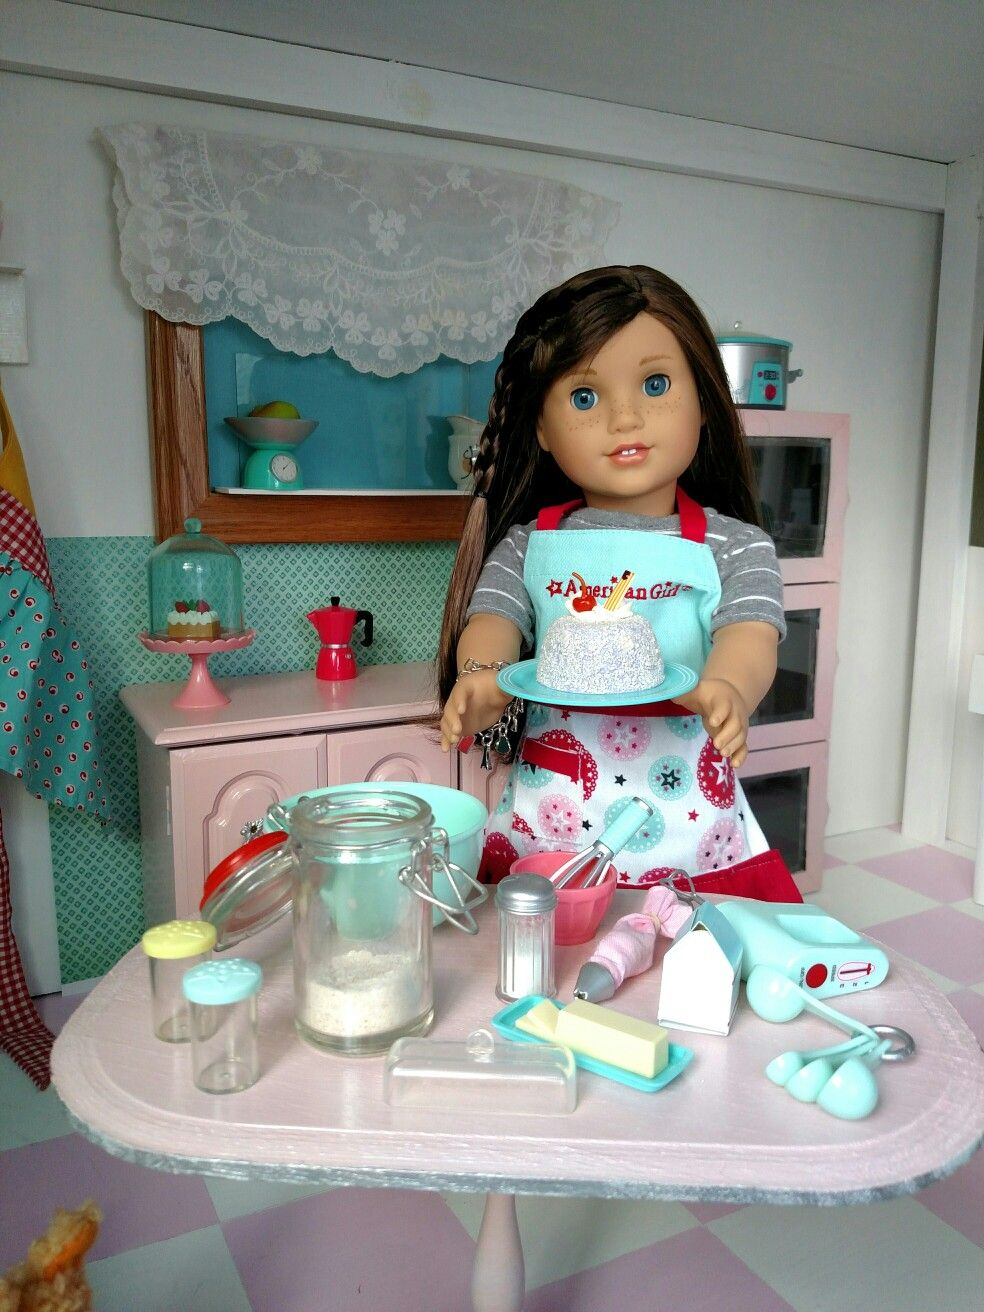 Baking a home cake for melody american girl doll